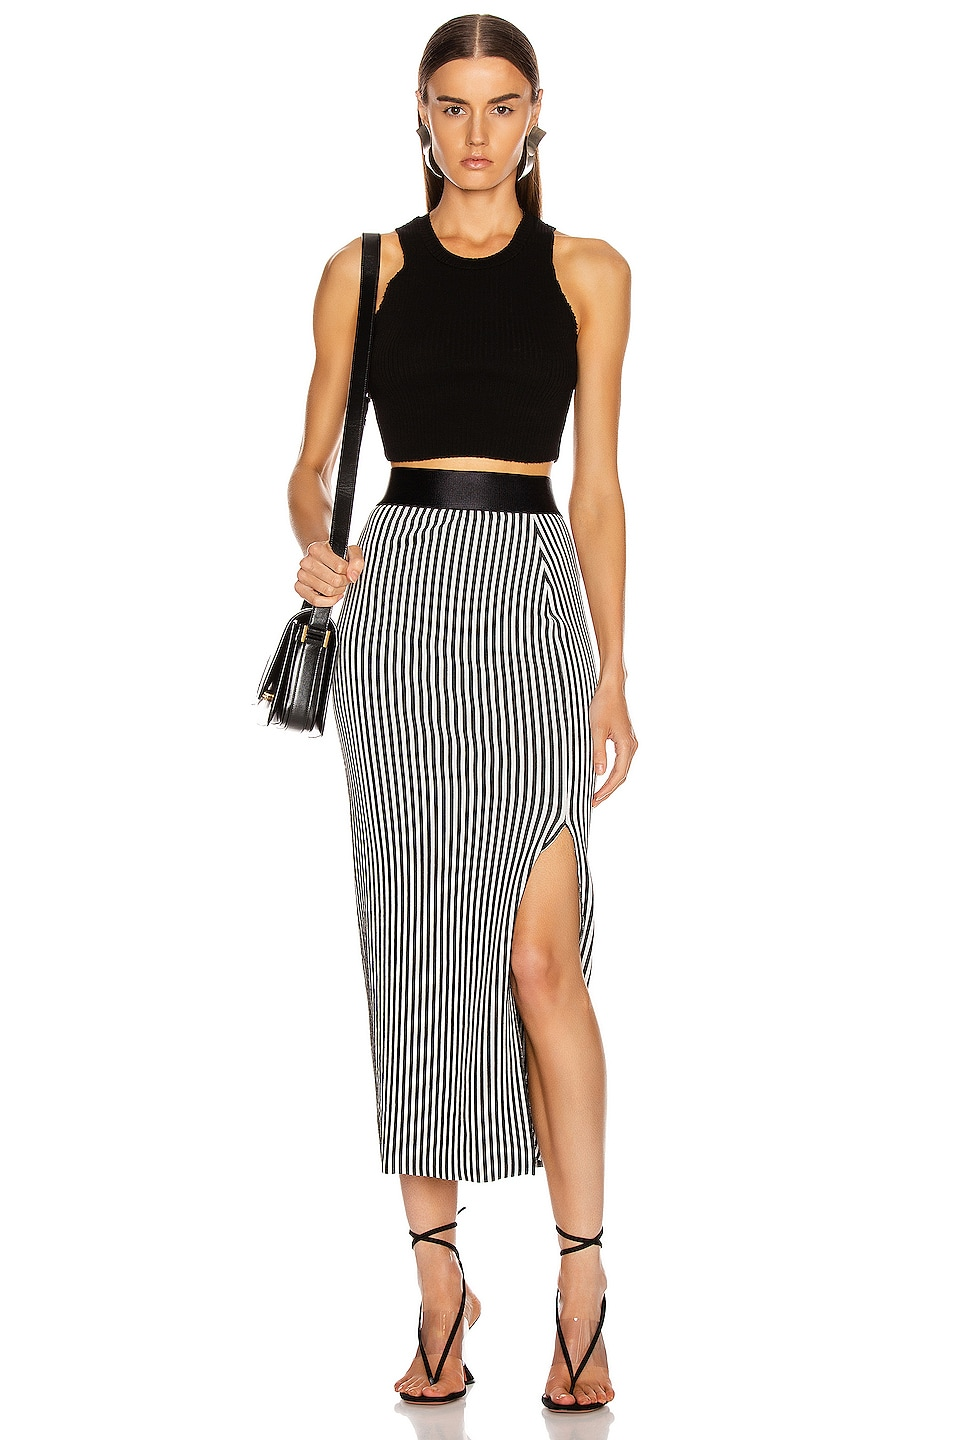 Image 4 of The Range Bound Striped Banded Skirt in White & Black